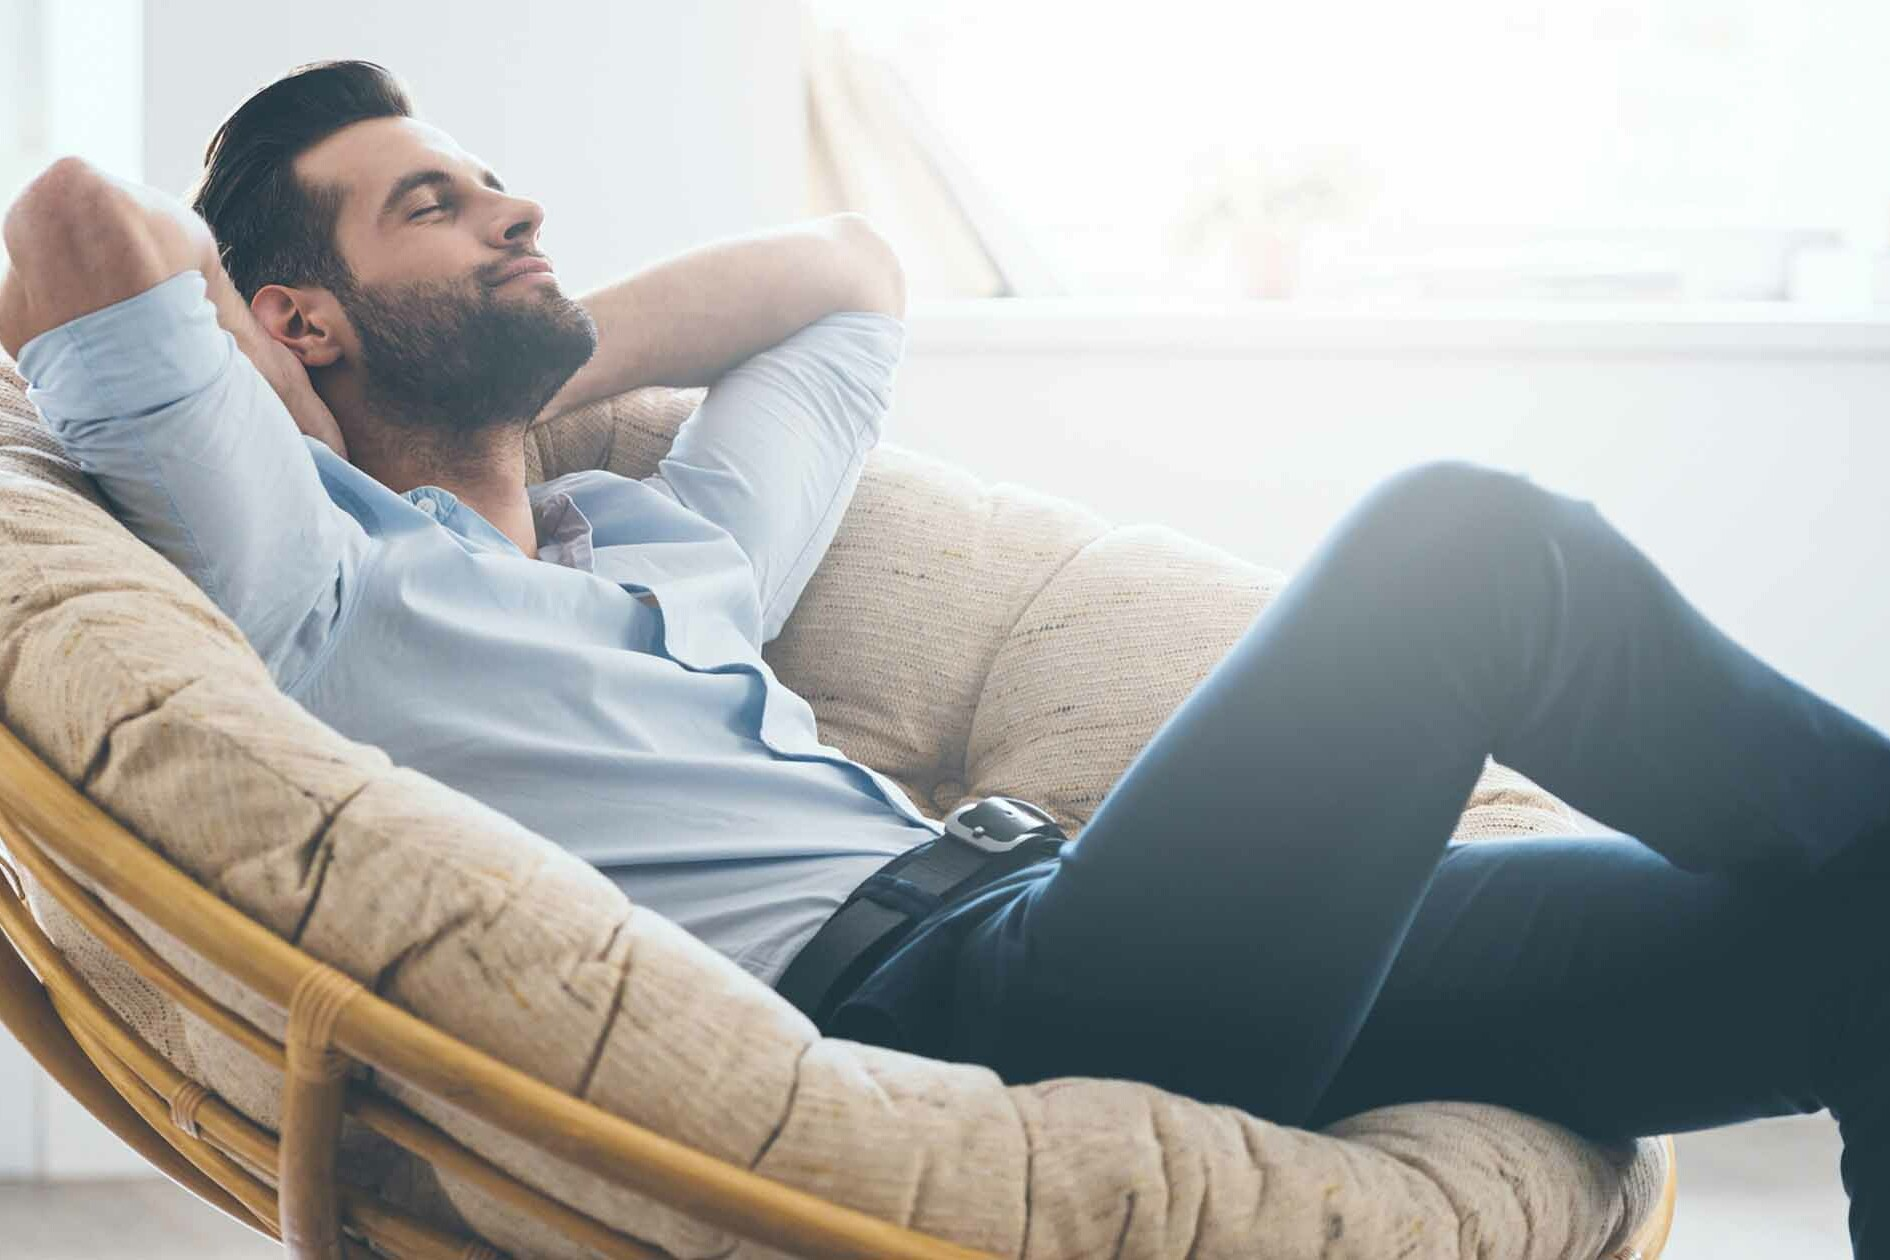 Man Relaxes in Chair - How to Handle Rejection